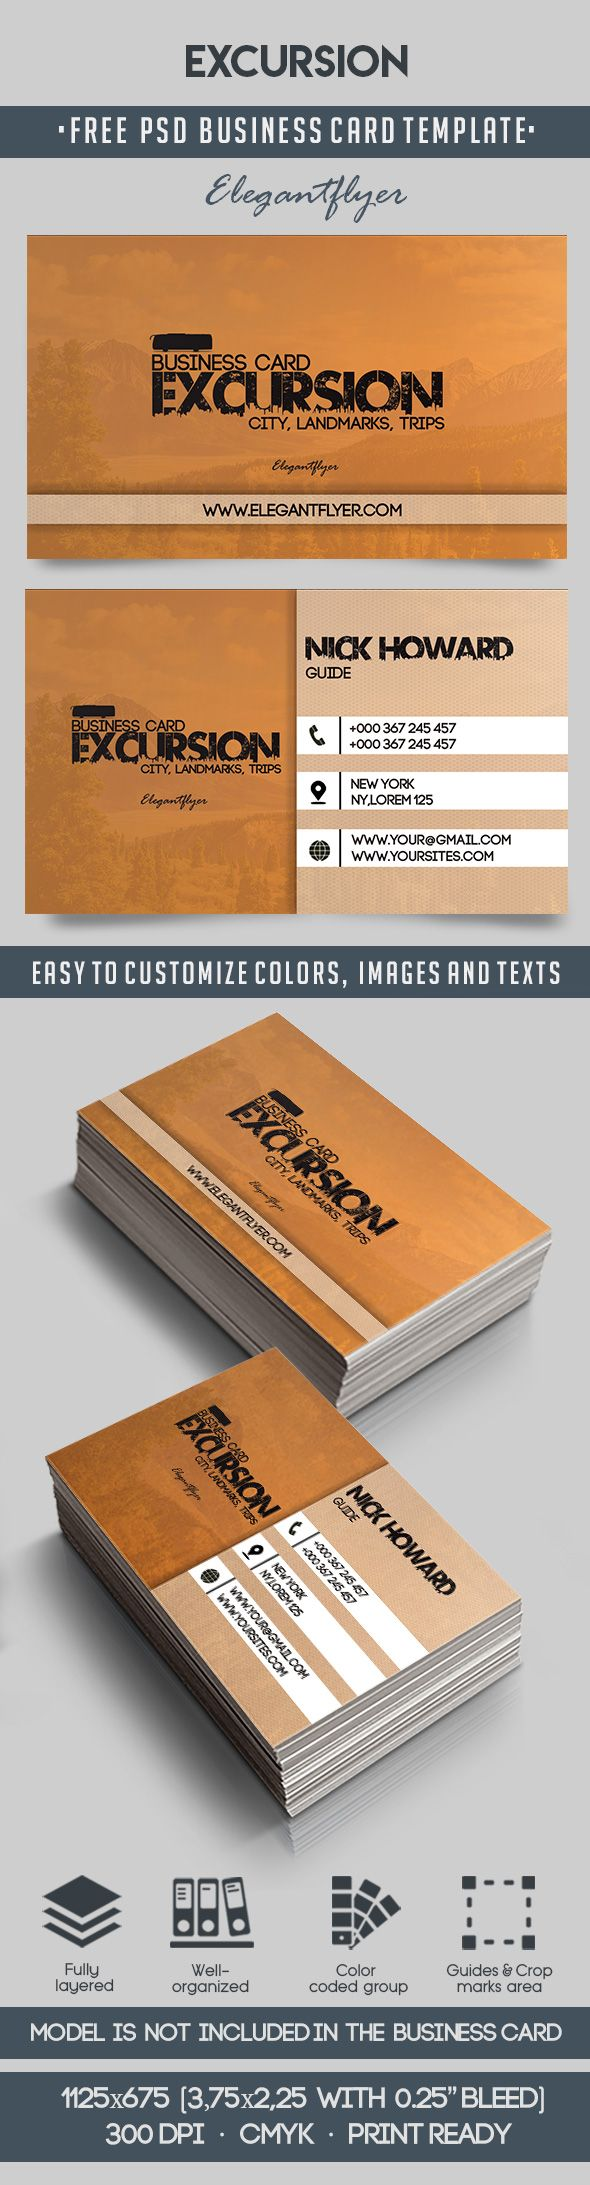 Excursion – Free Business Card Templates PSD